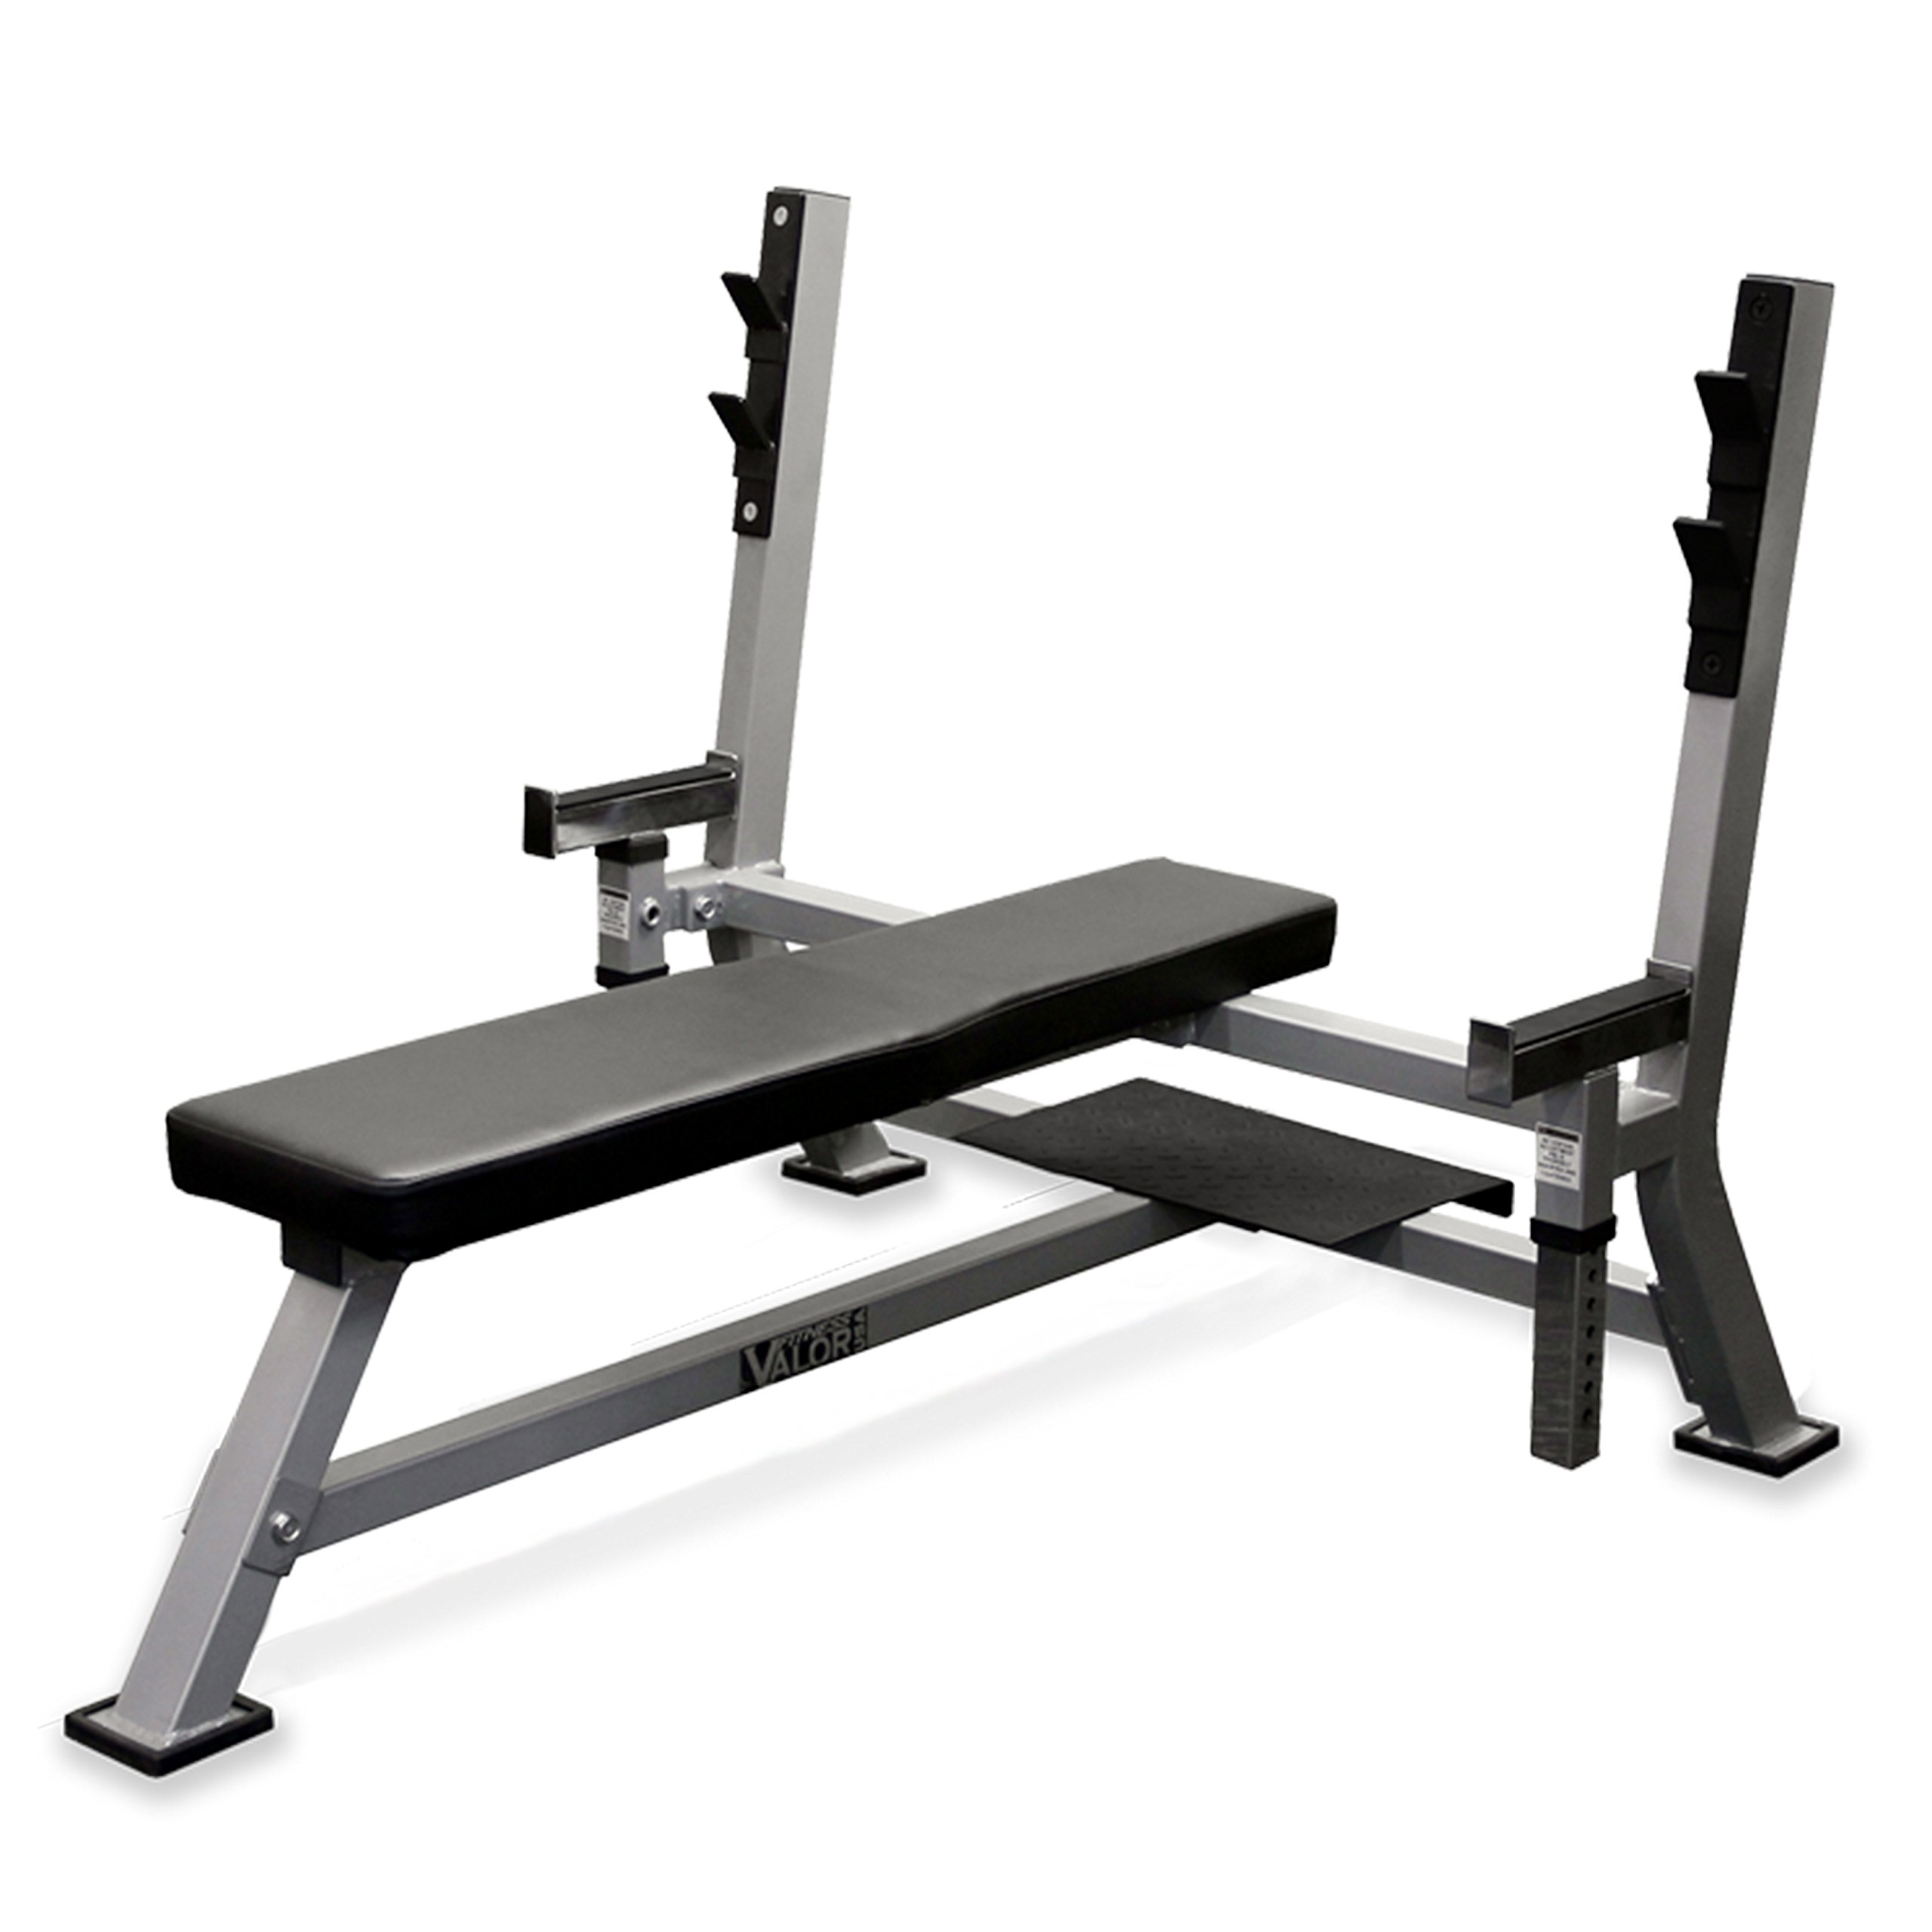 Valor Fitness BF-48 Olympic Bench Pro with Spotter by Valor Fitness (Image #1)